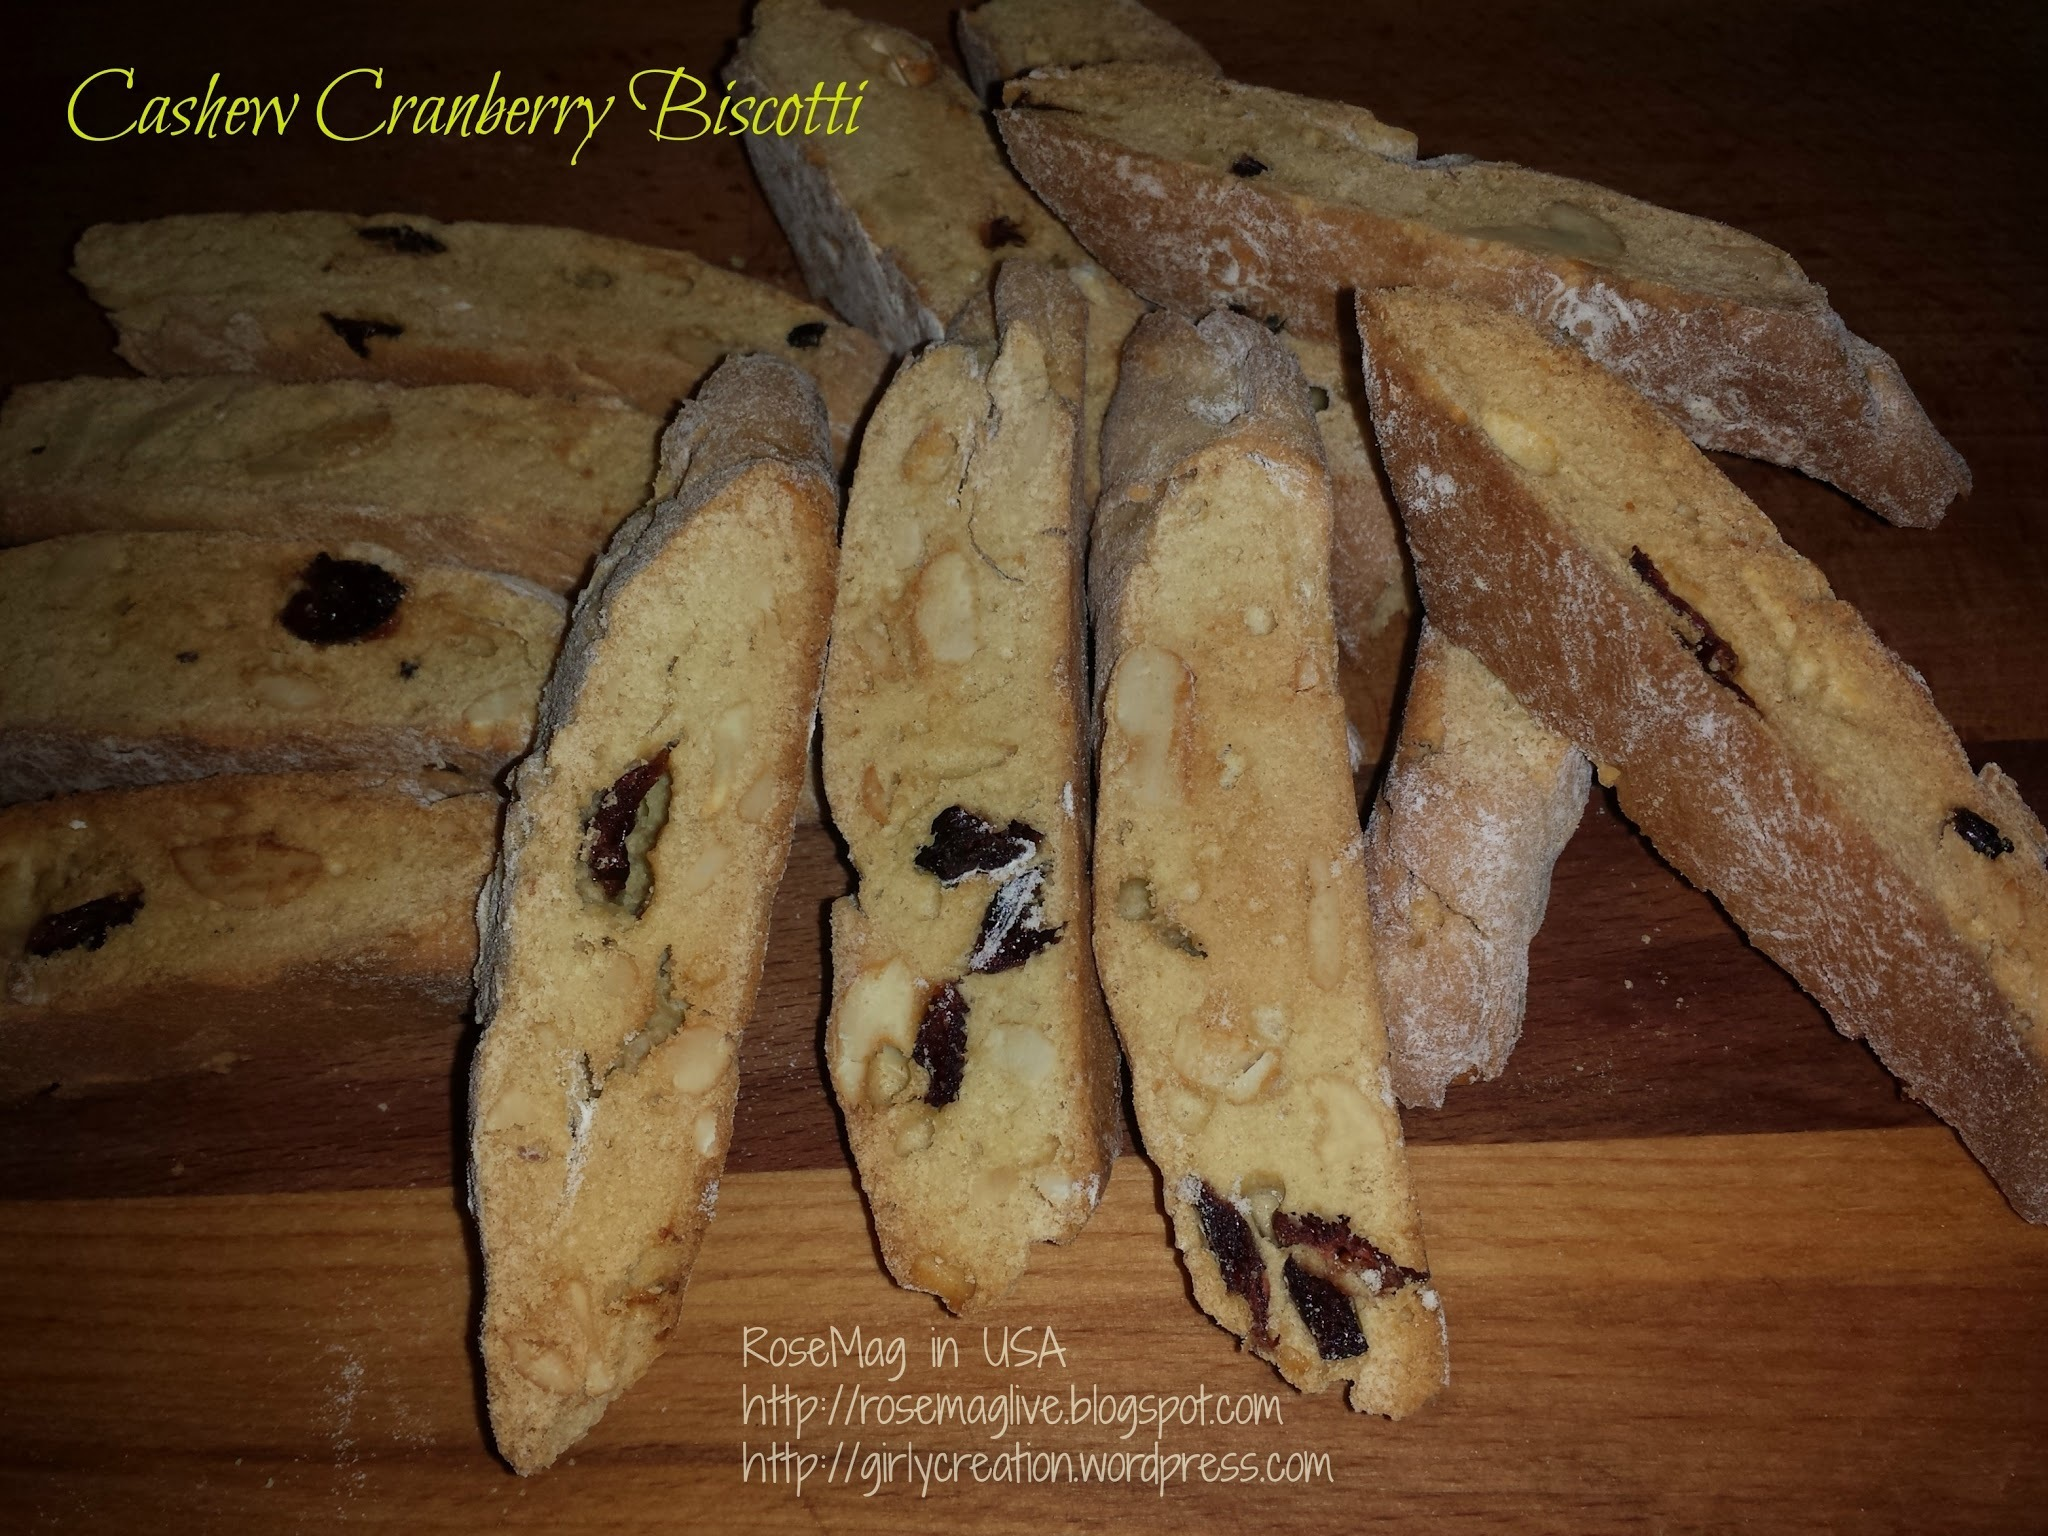 意式腰果蔓越莓餅乾(廚師機版)Cashew Cranberry Biscotti (Bosch Mixer Version)